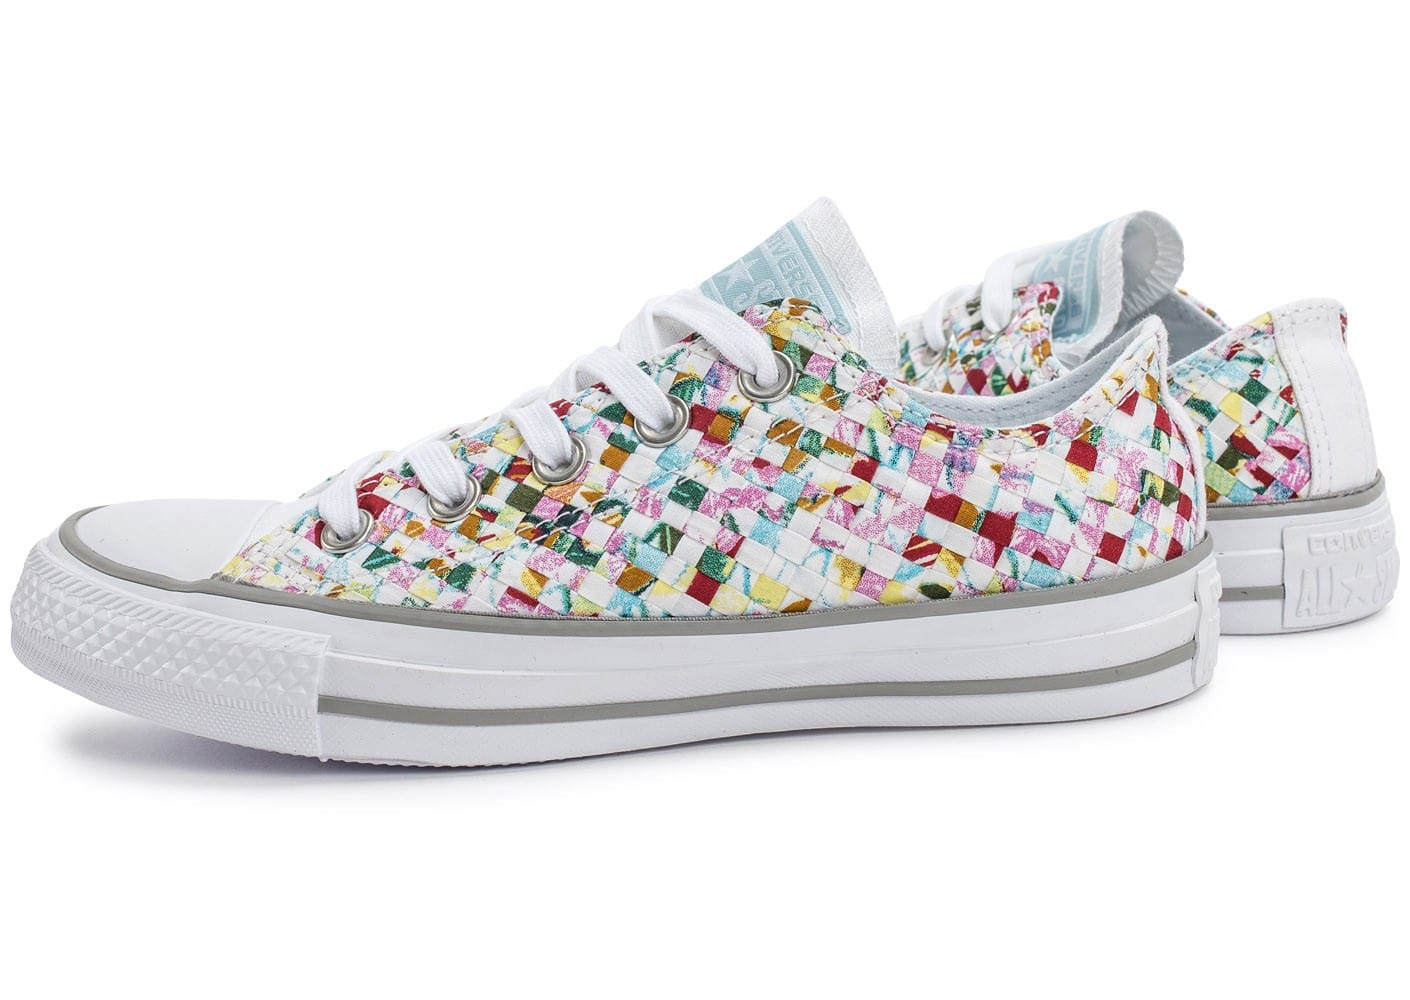 Meilleur prix Converse Chuck Taylor All star Printed Woven